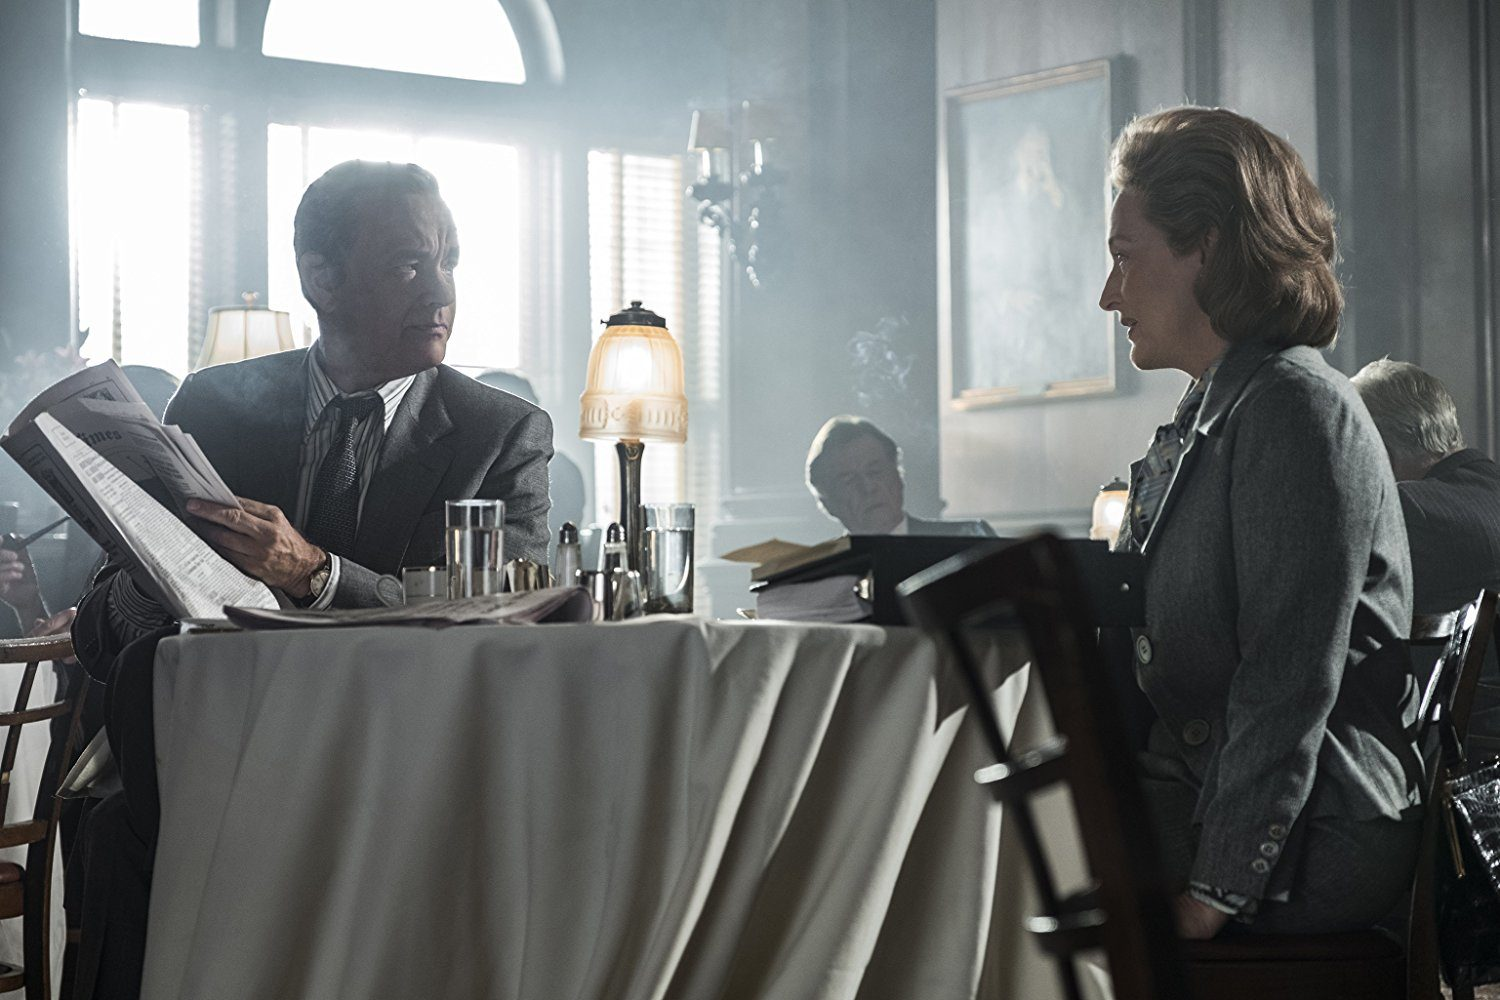 Crítica: The Post: A Guerra Secreta (The Post, EUA, 2018)